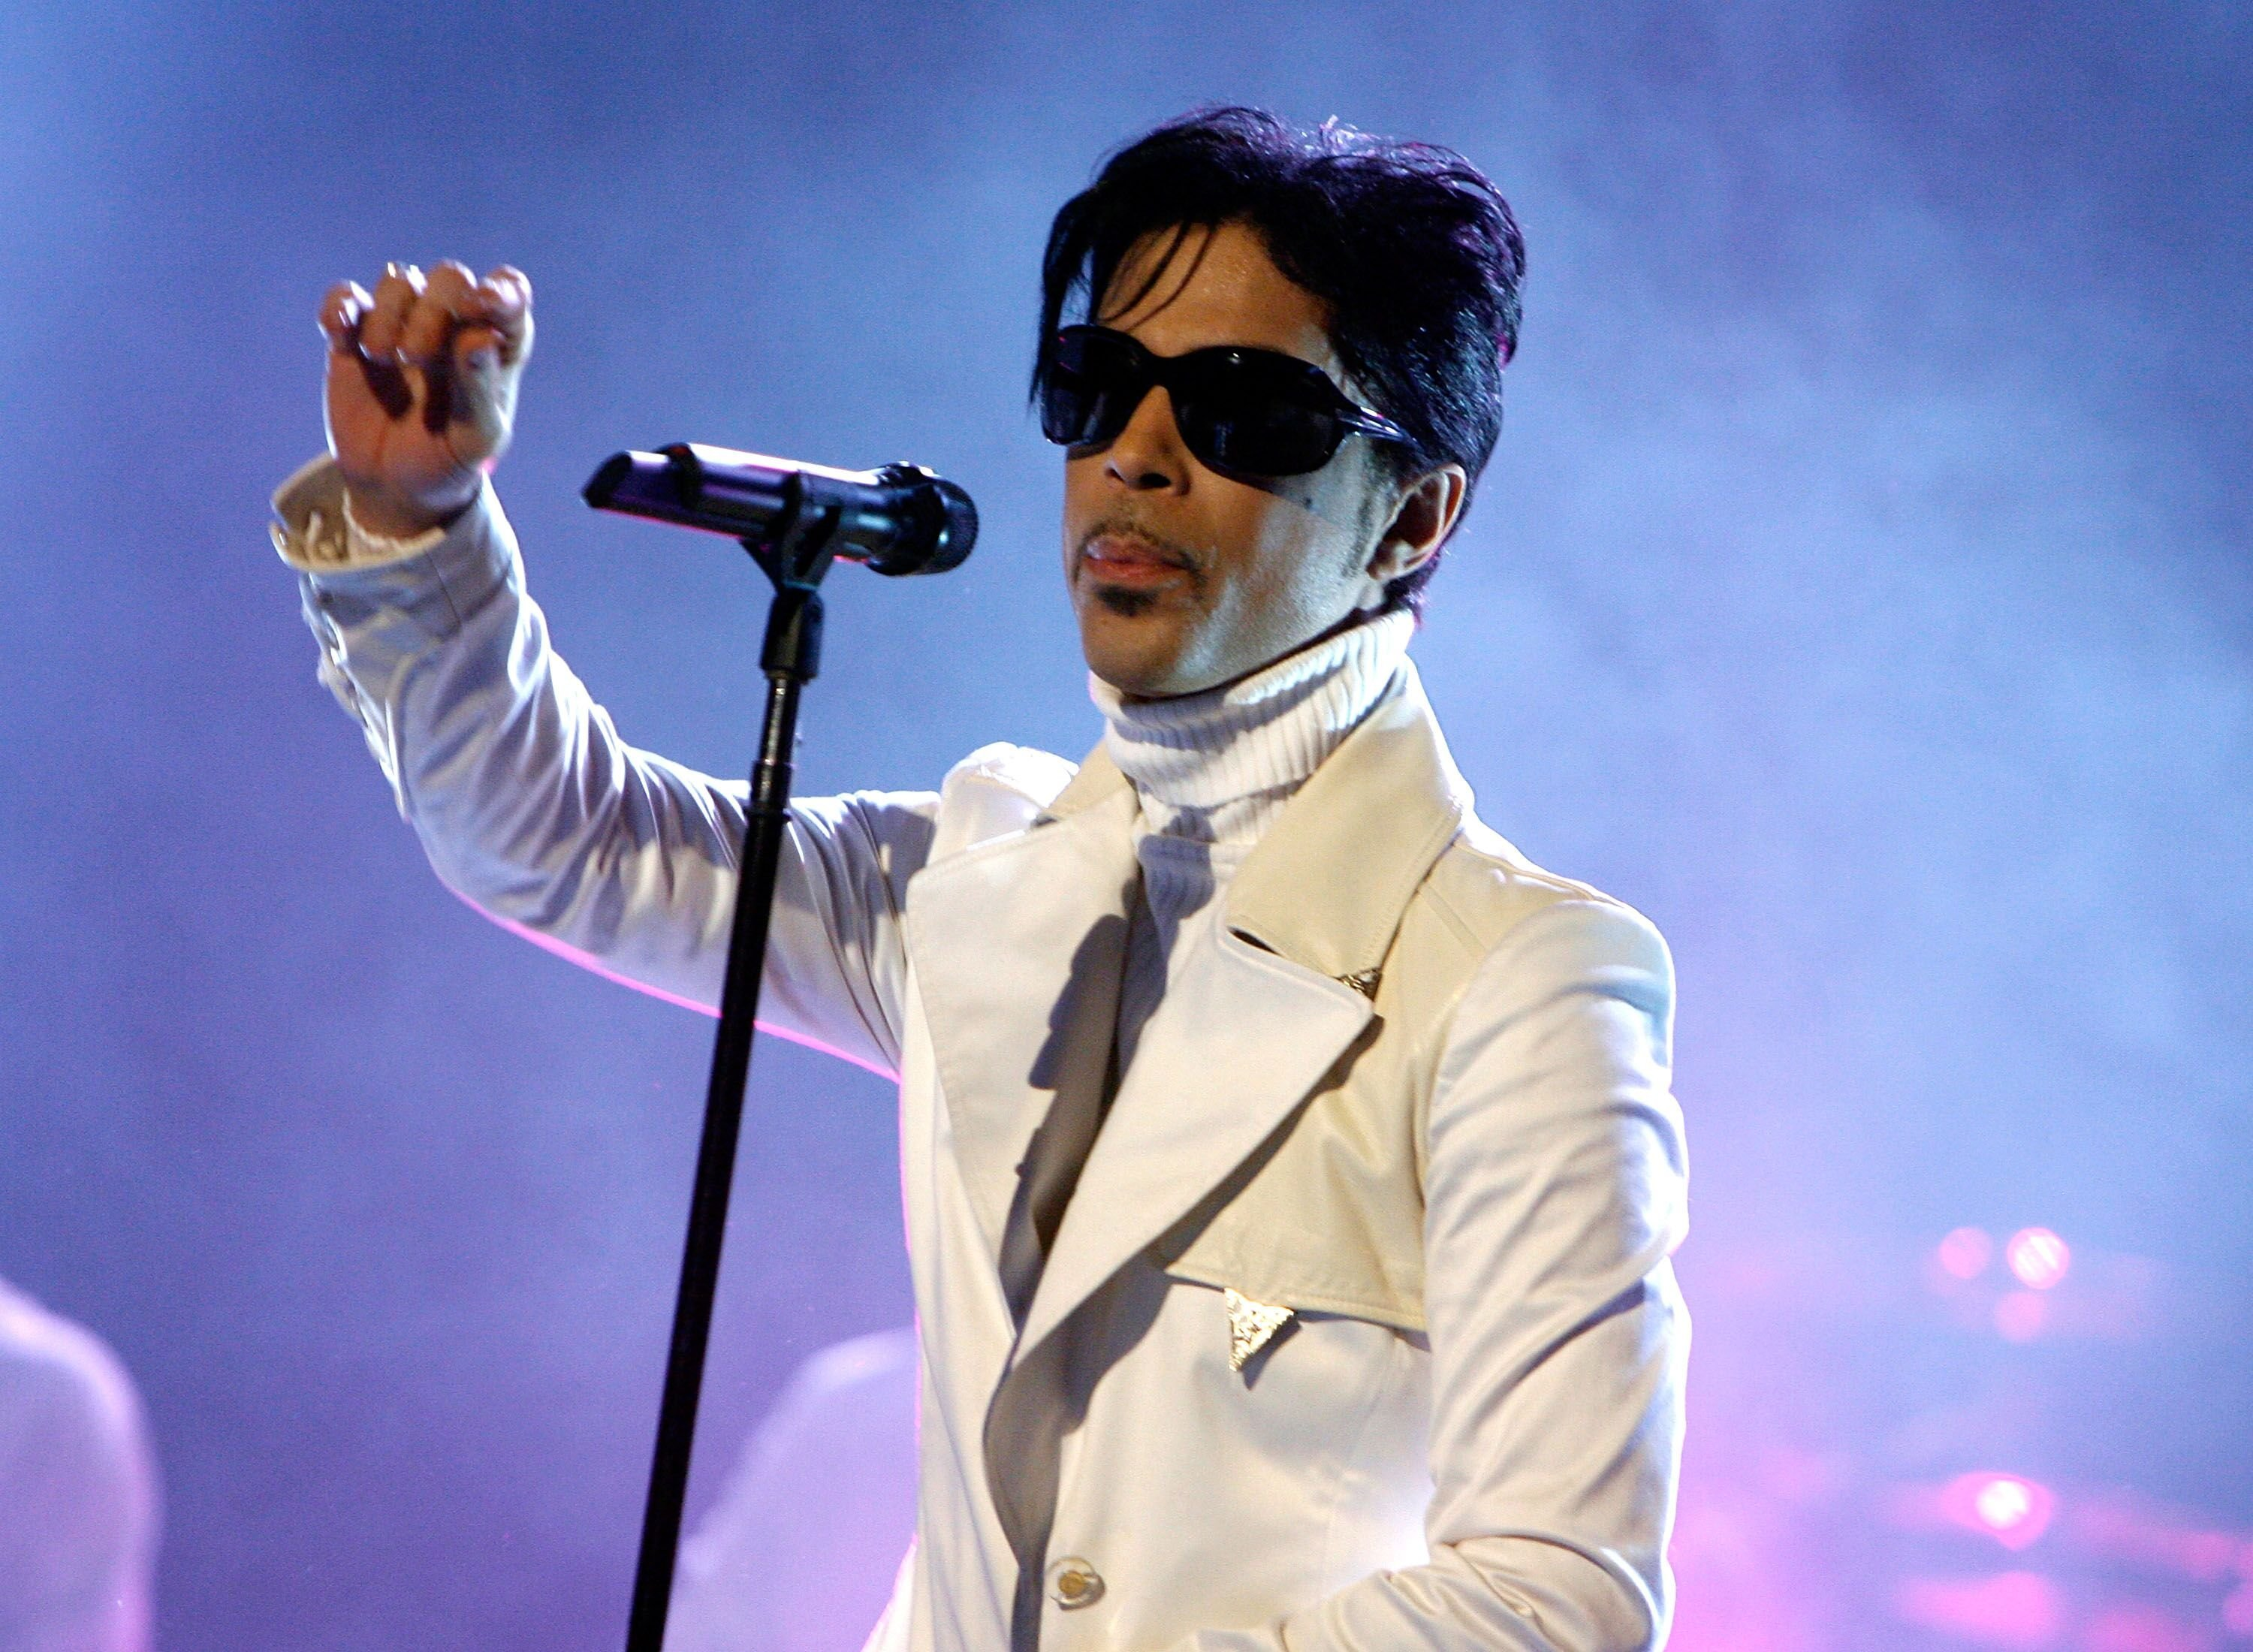 Prince performing on-stage during a concert | Getty Images